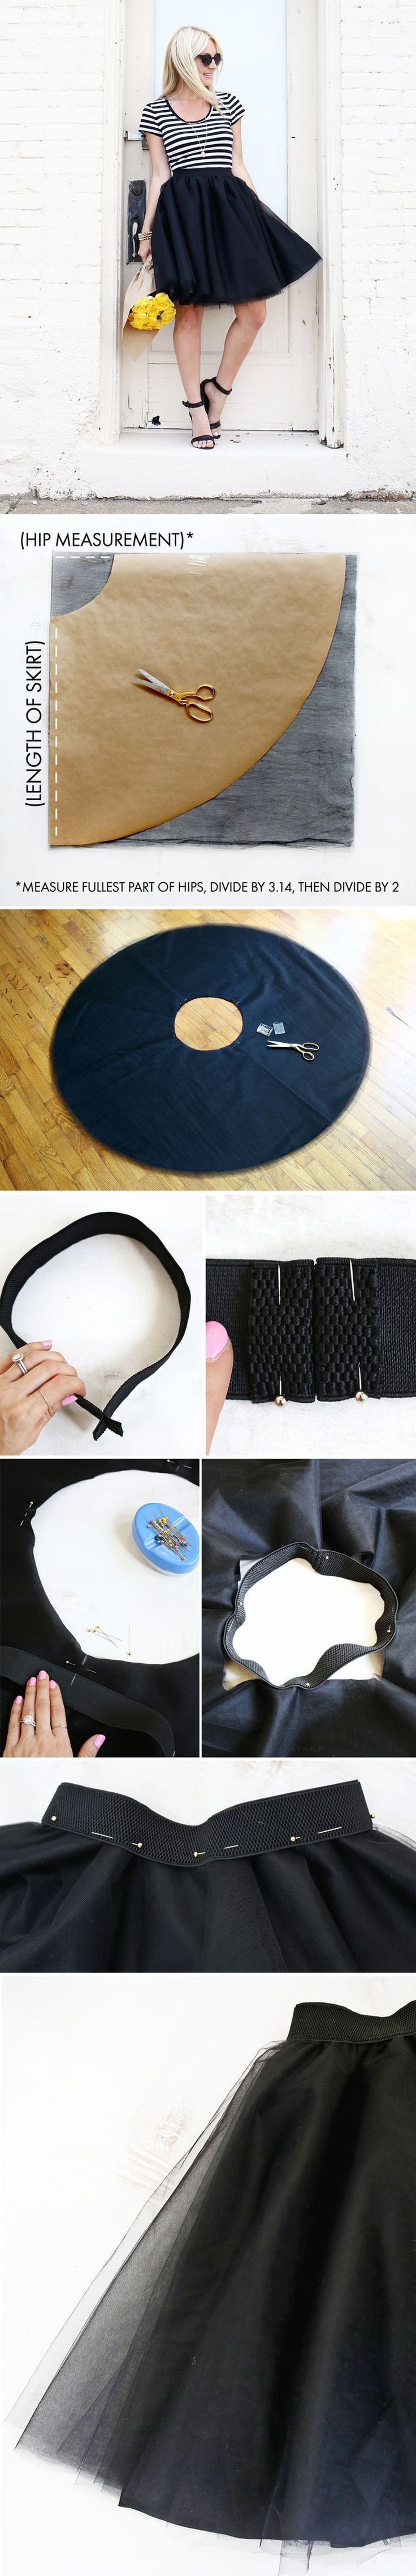 cool Tulle Circle Skirt DIY by http://www.dezdemonfashiontrends.top/diy-fashion/tulle-circle-skirt-diy/